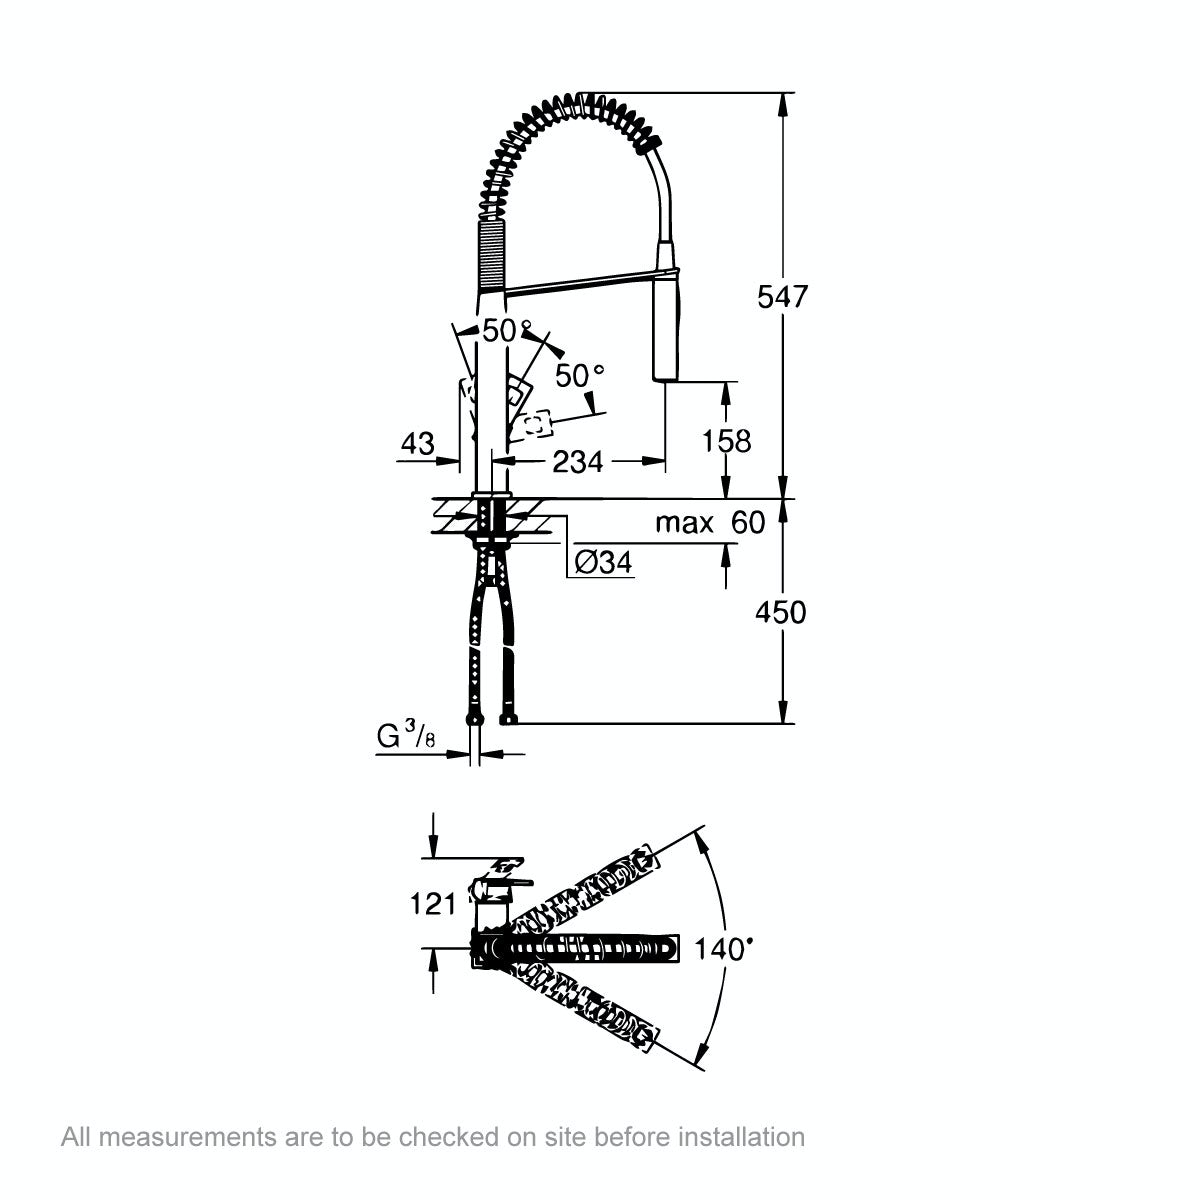 Dimensions for Grohe Eurocube Profi-spray kitchen tap with pull down spout